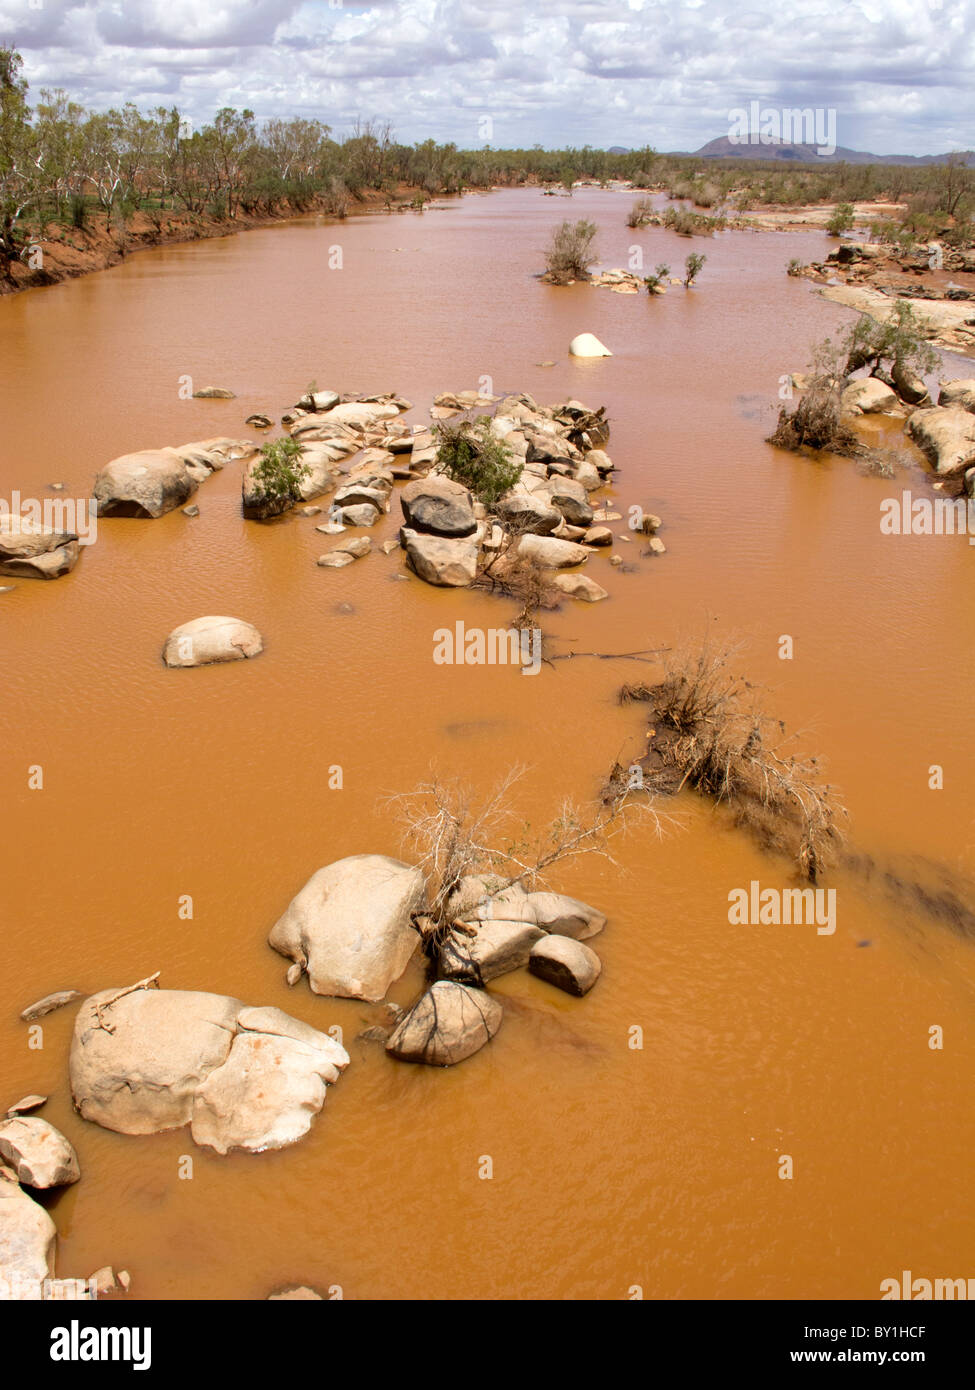 Ashburton River in outback Western Australia with water after rare rainfall - Stock Image